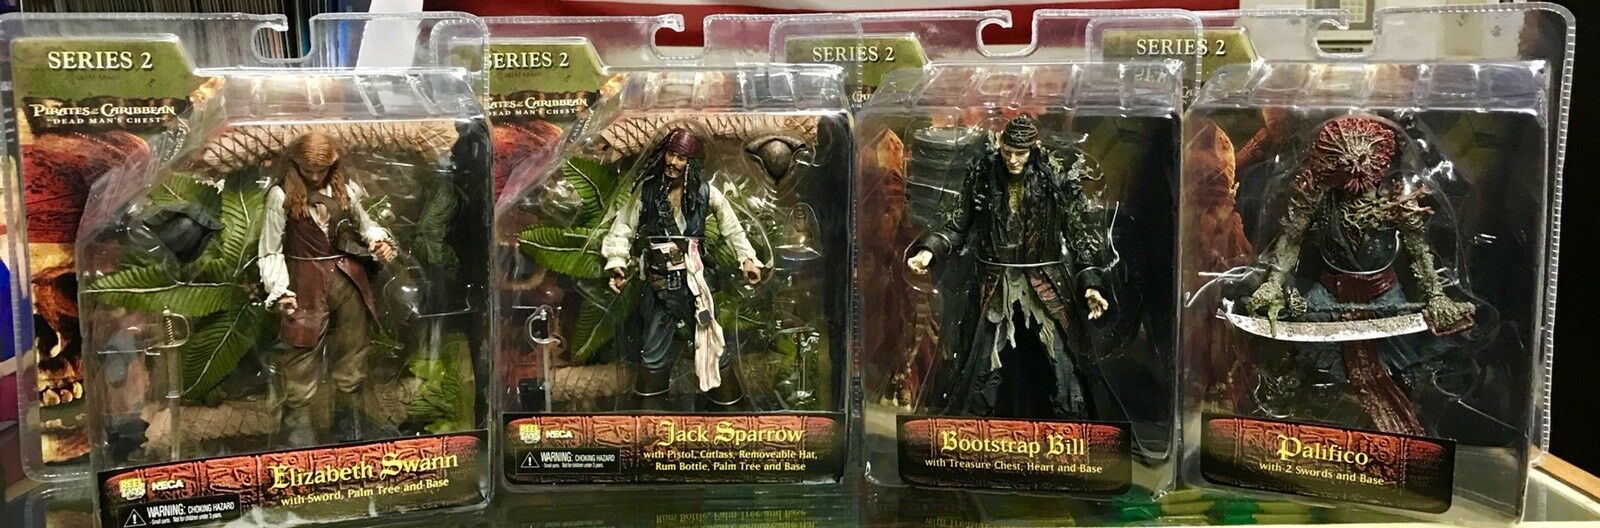 Pirates Of The Caribbean Caribbean Caribbean Dead Man's Chest Series 2 Action Figure Set 2006 L@@K 531f95